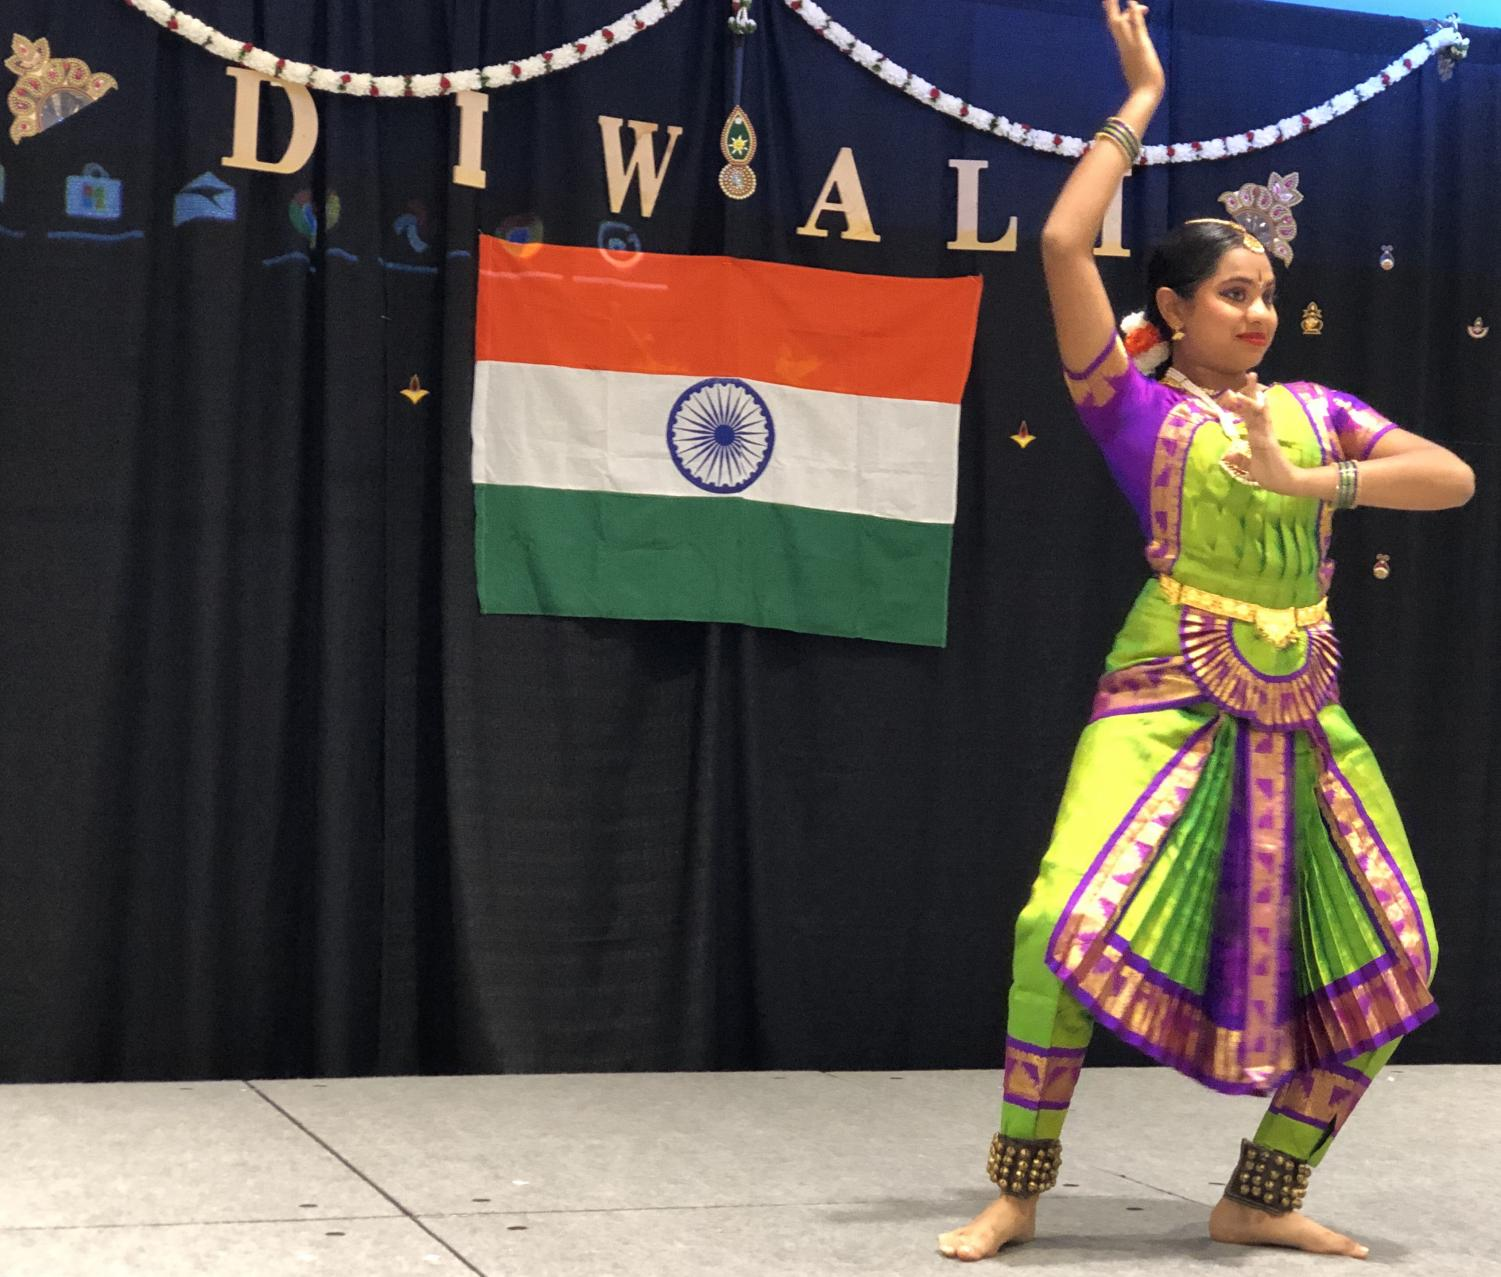 Jonathan Garcia/ISLAND WAVES - Veterans Memorial High School sophomore Sunidhi Kulkarni performs for a group of many in attendance at the Diwali festival, getting in touch with her roots.